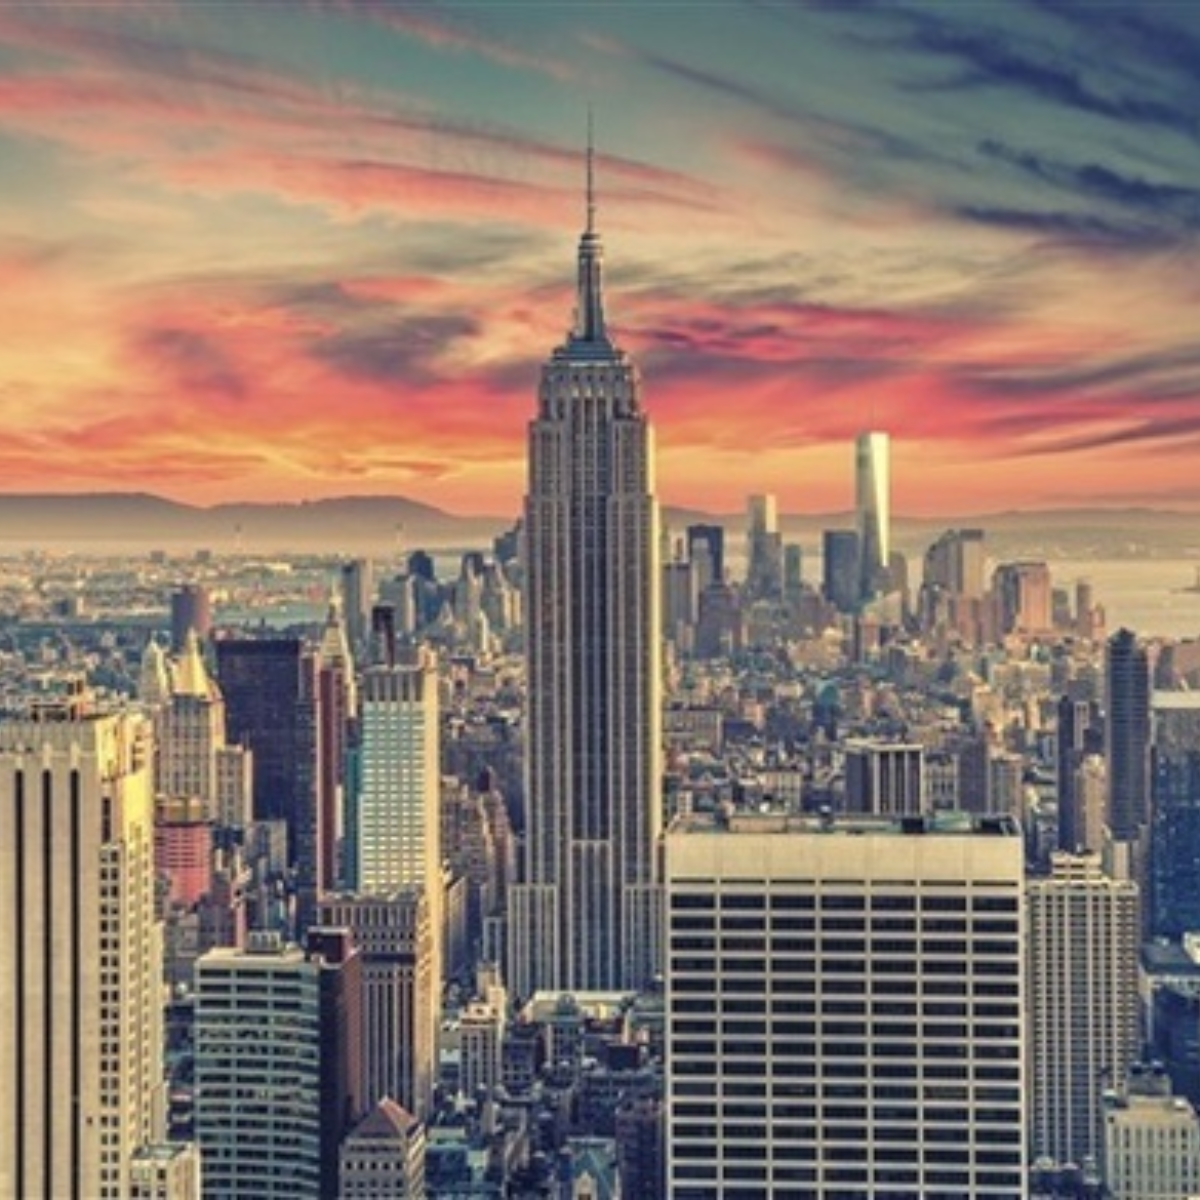 New York City Sightseeing Images